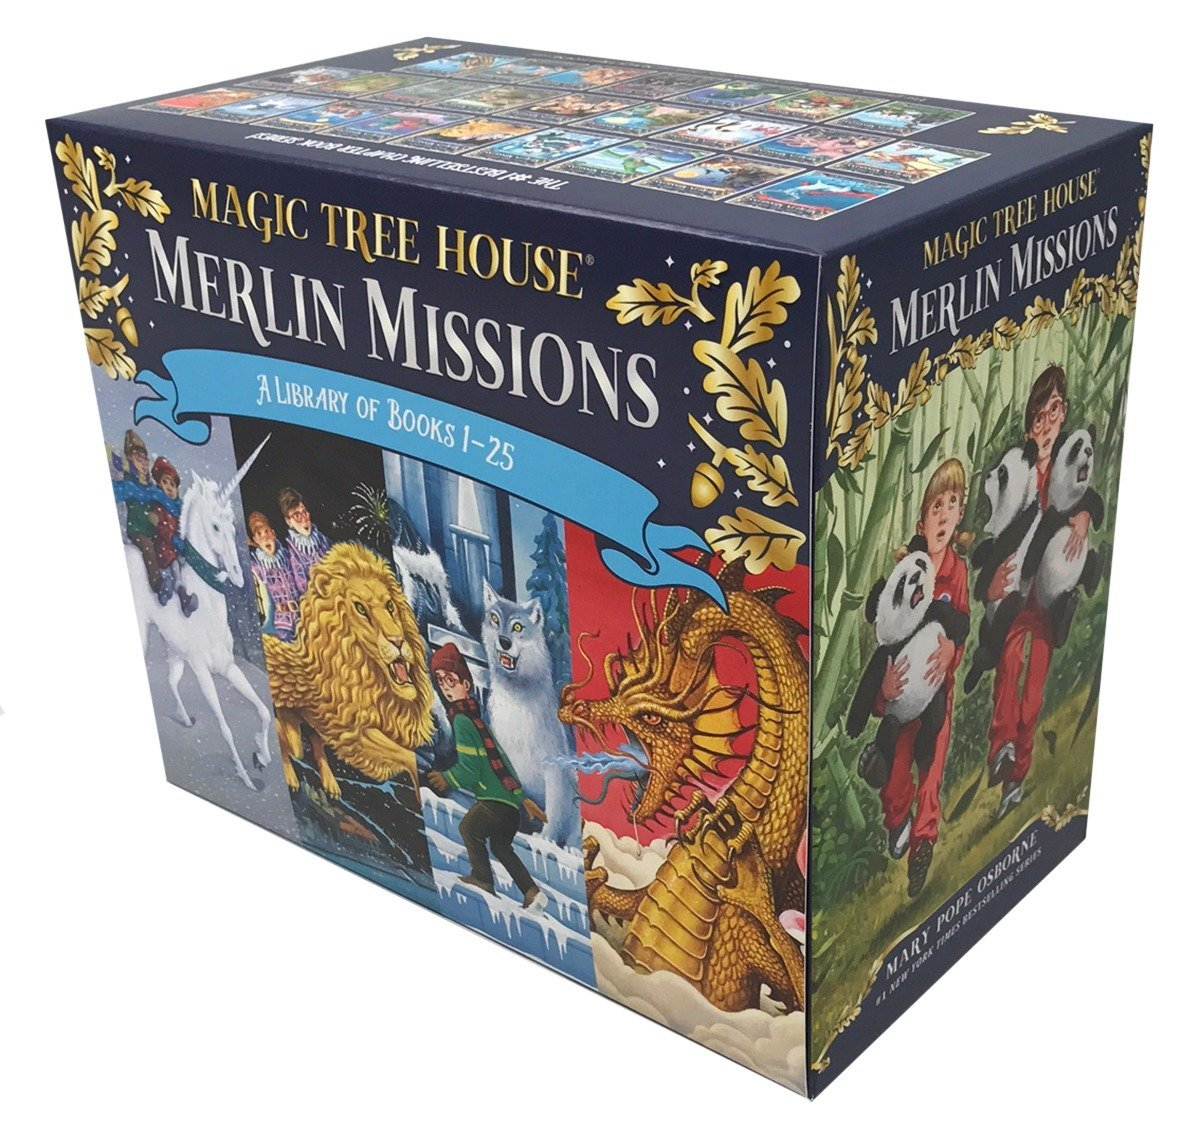 Magic Tree House Merlin Missions  1 25 Boxed Set  Magic Tree House  R  Merlin Mission